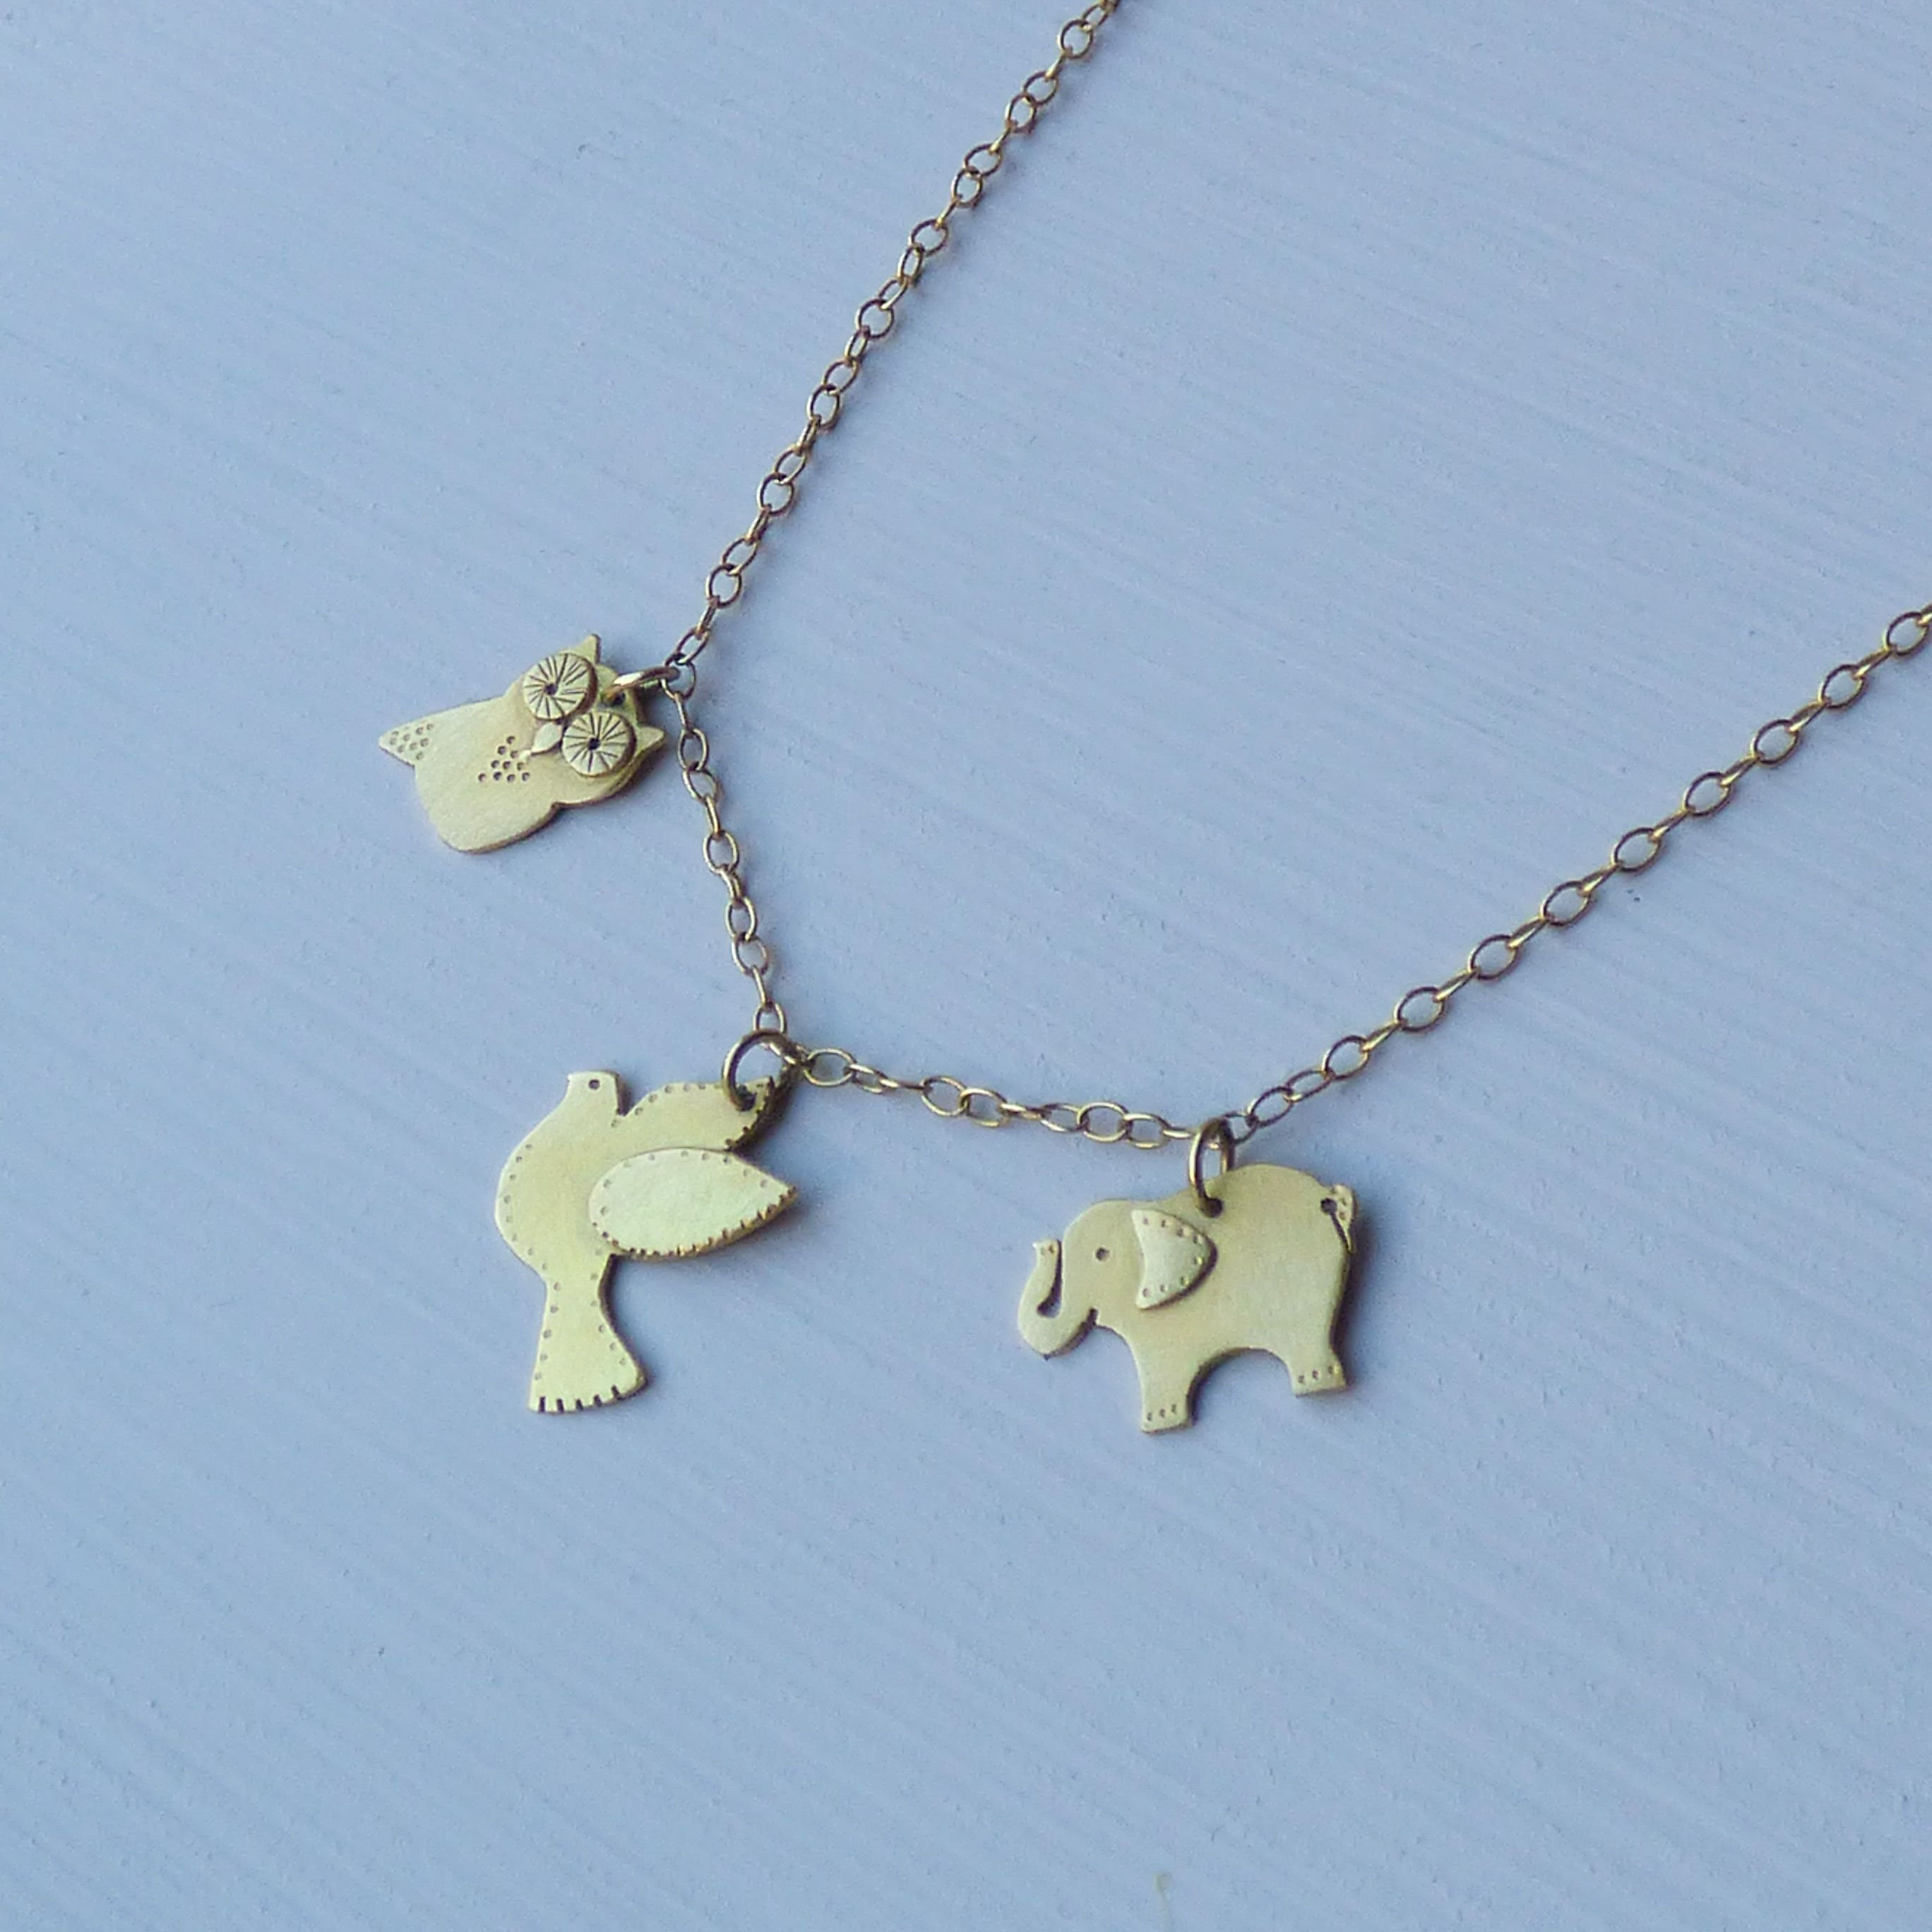 Take a look at these adorable handmade Animal Amulets by Shakti